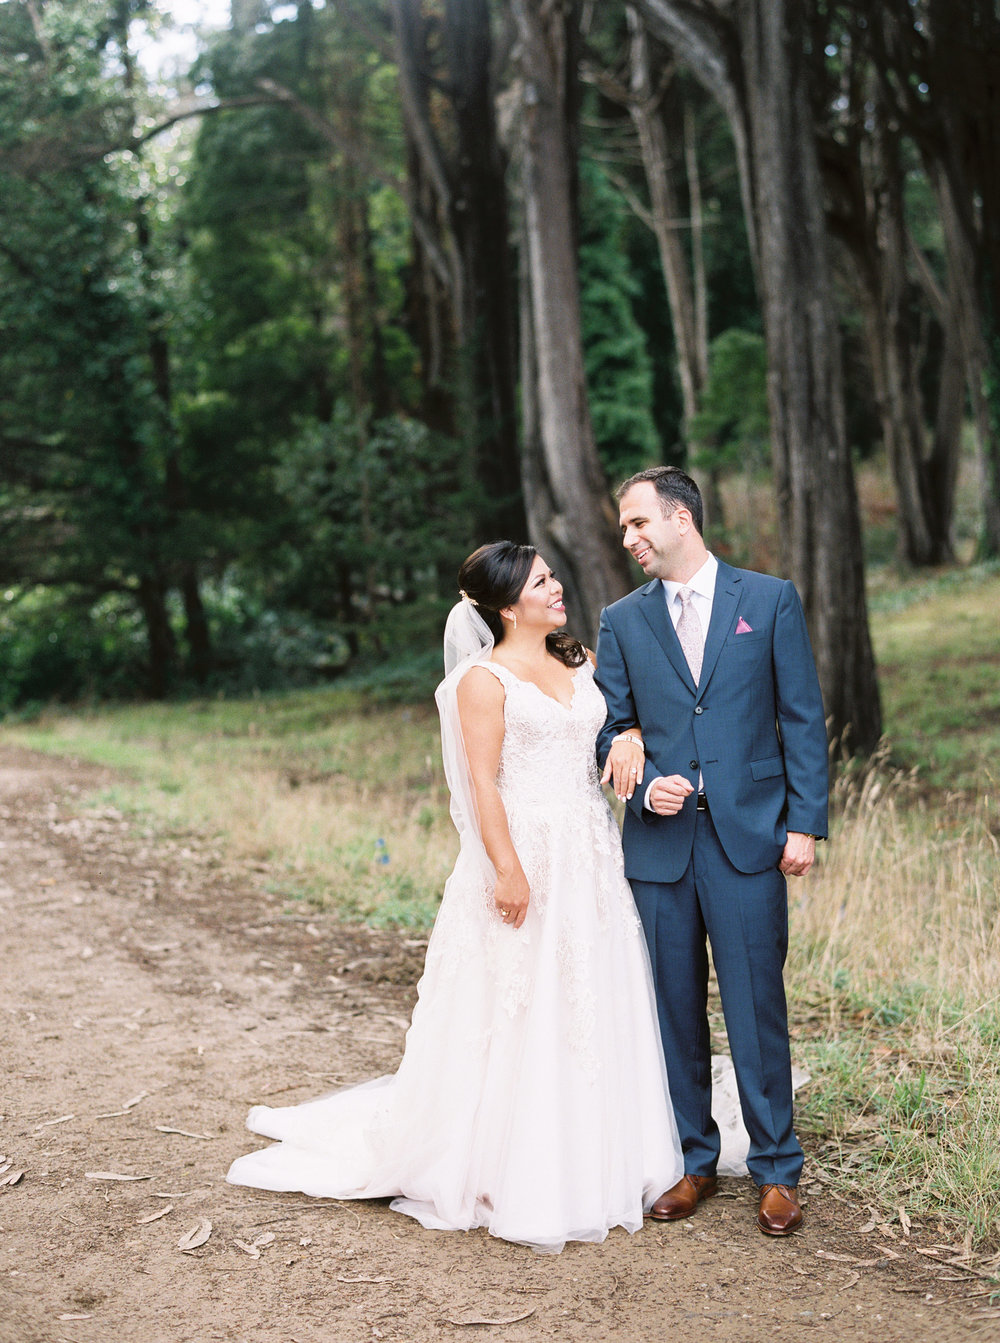 style-inspired-wedding-at-the-presidio-in-san-francisco.jpg